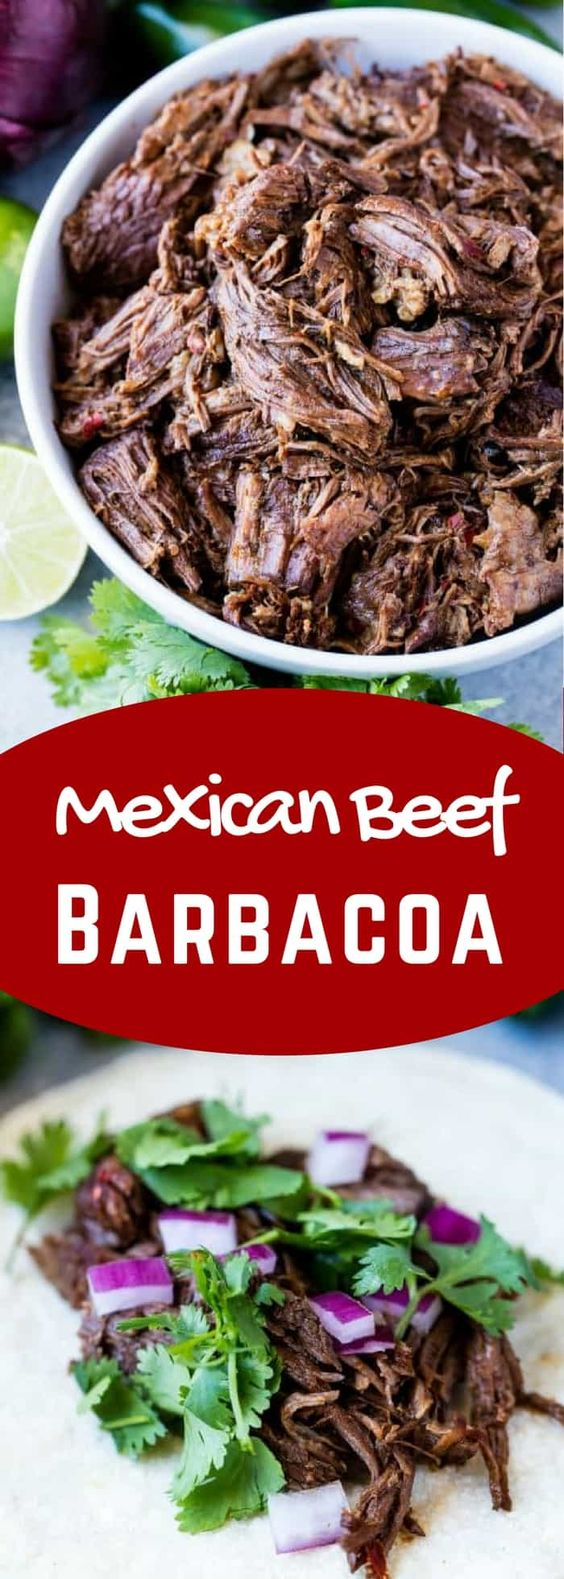 THE BEST MEXICAN BEEF BARBACOA RECIPE